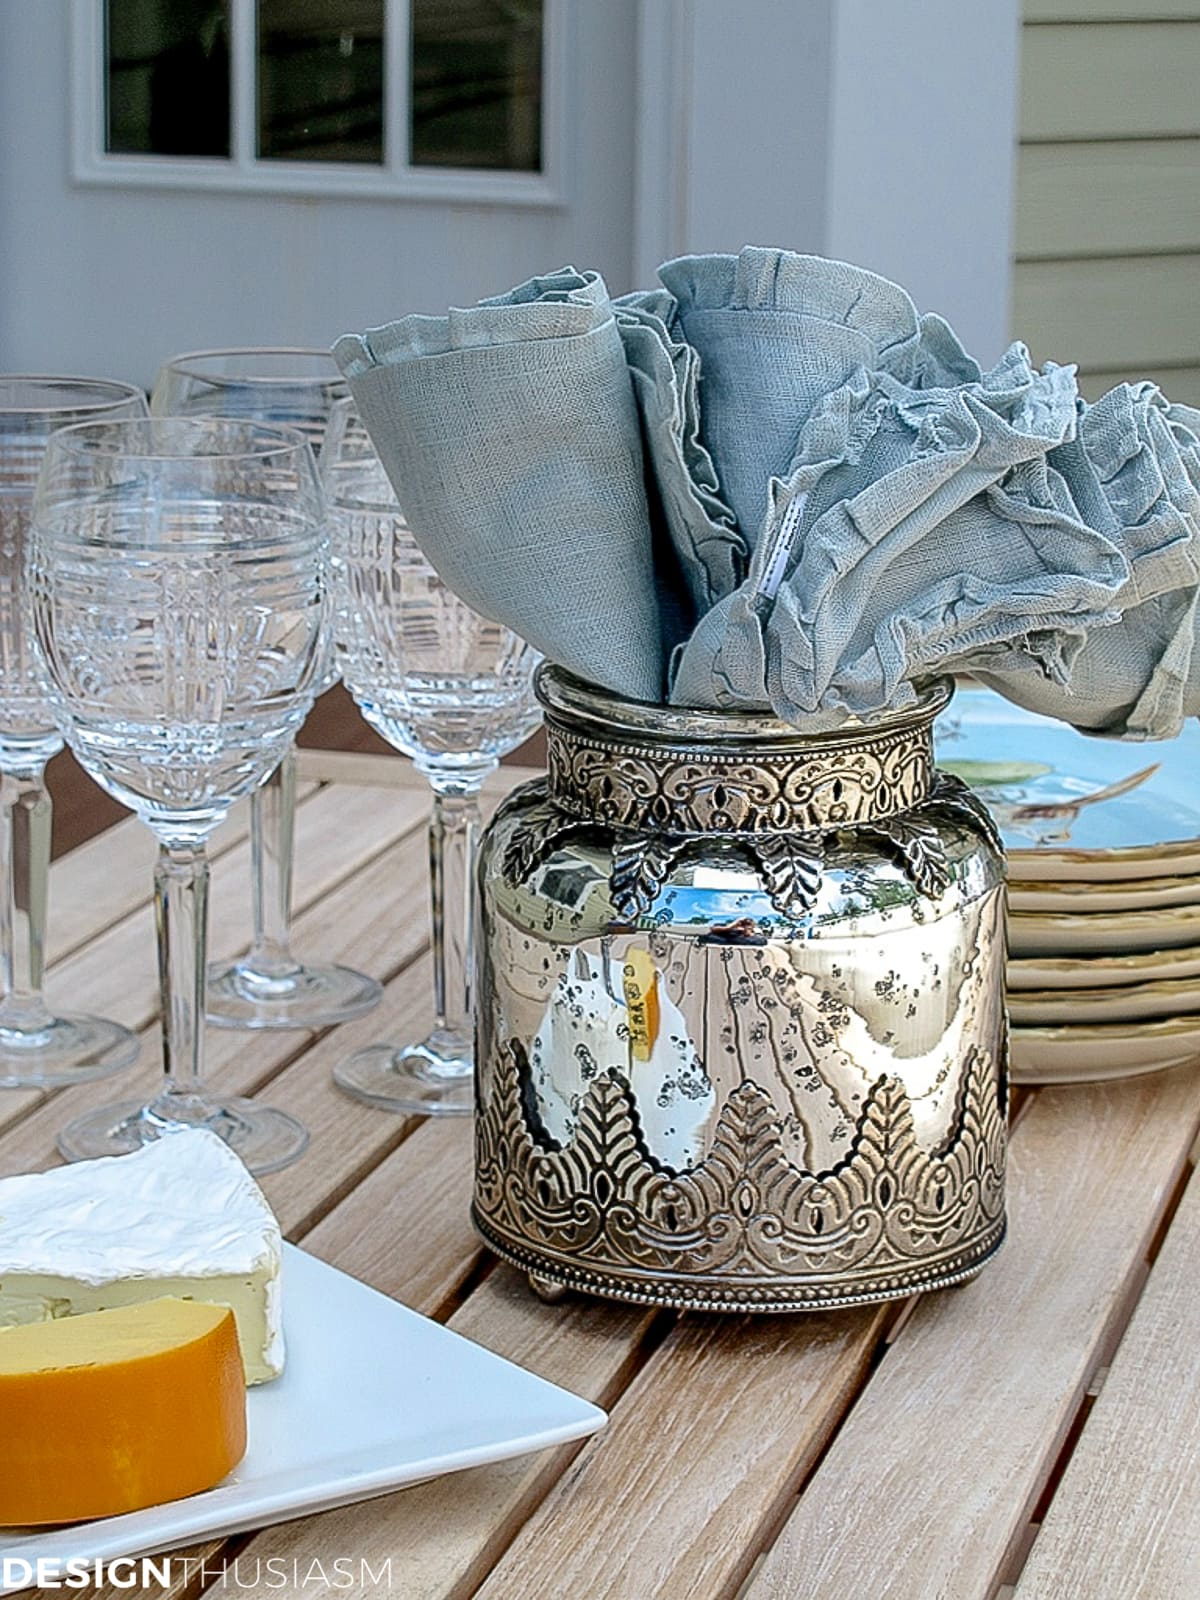 napkins in a vase on the patio